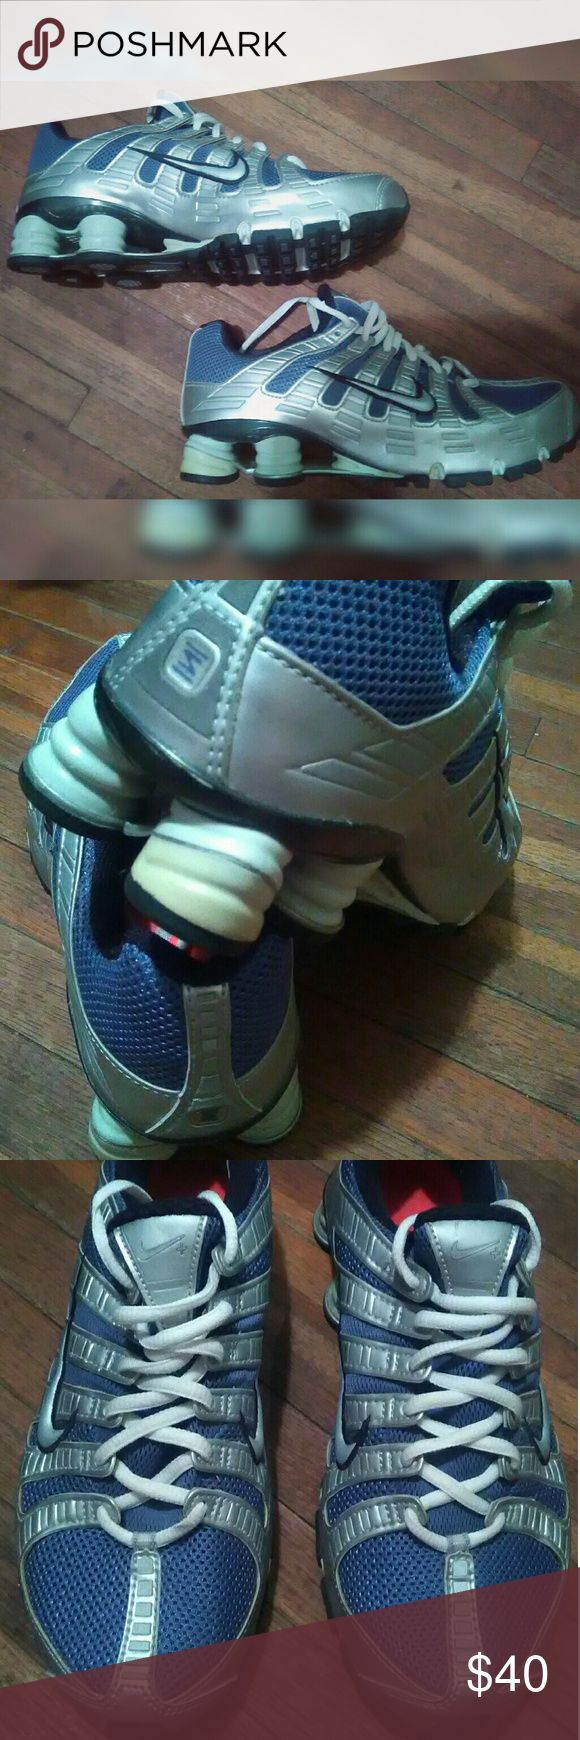 Women's Nike Shoe Size 8 Still New Still new Nike women's running shoe. Worn these one time and only inside. Nike Shoes Sneakers